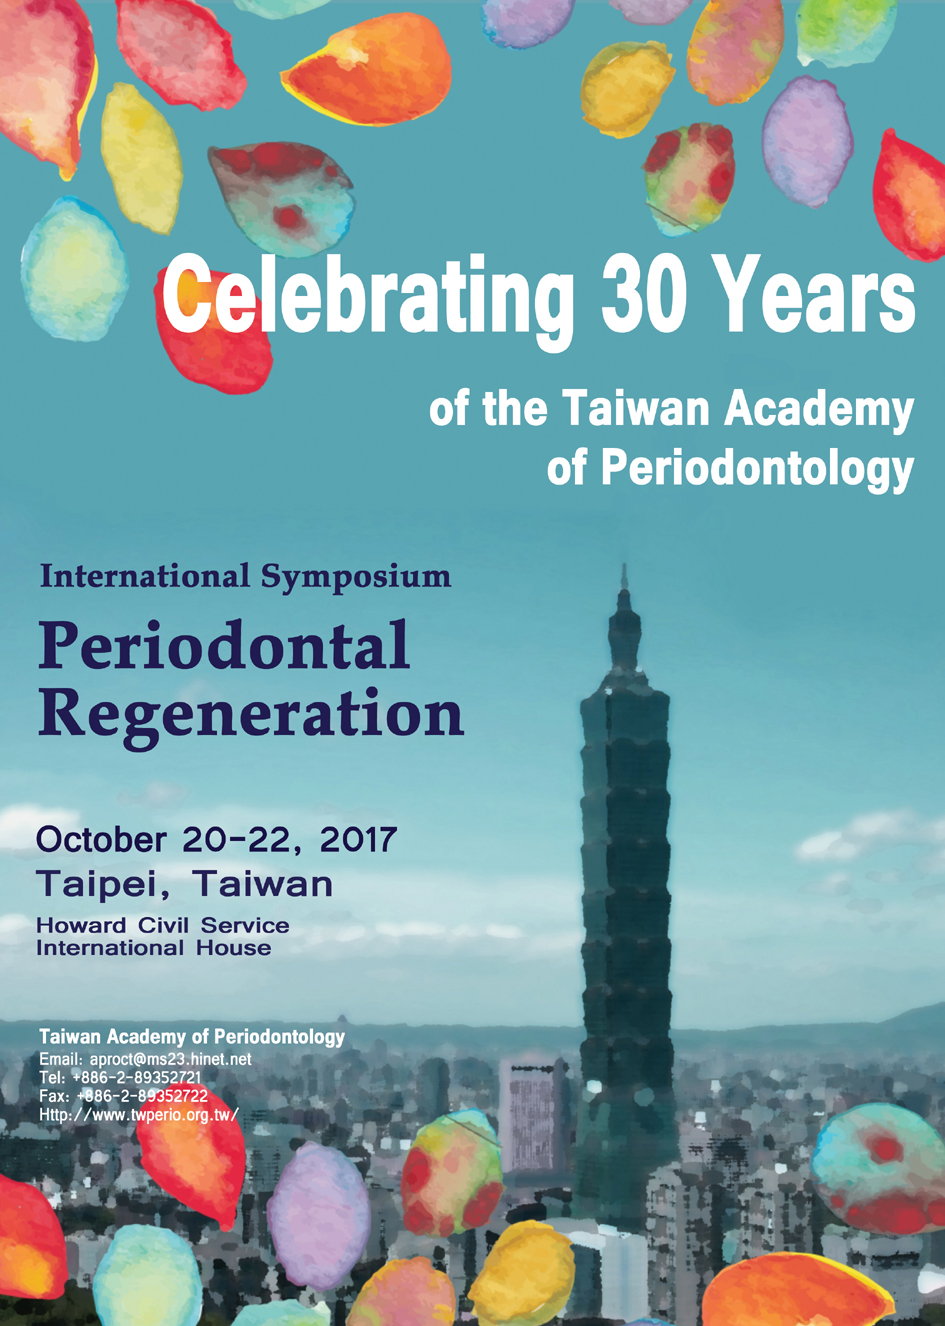 International Symposium Periodontal Regeneration(Celebrating 30 Years of the Taiwan Academy of Periodontology)